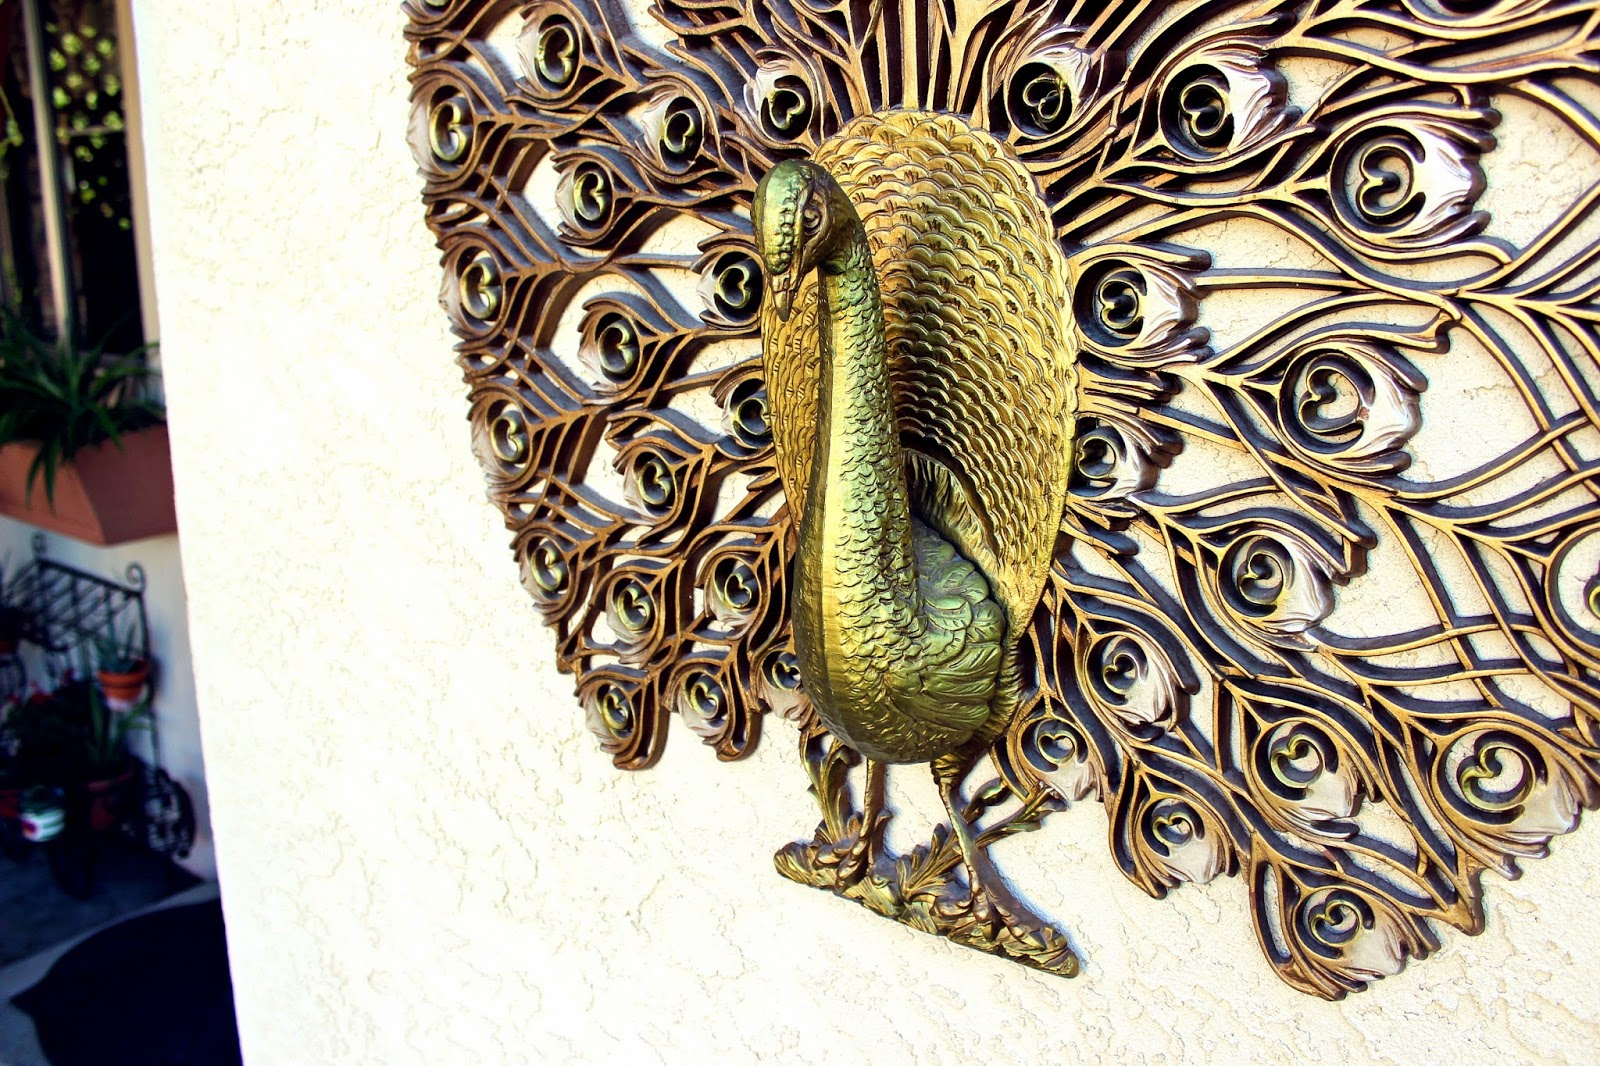 Vintage peacock wall decor : Vintage finds peacock wall decor thee kiss of life